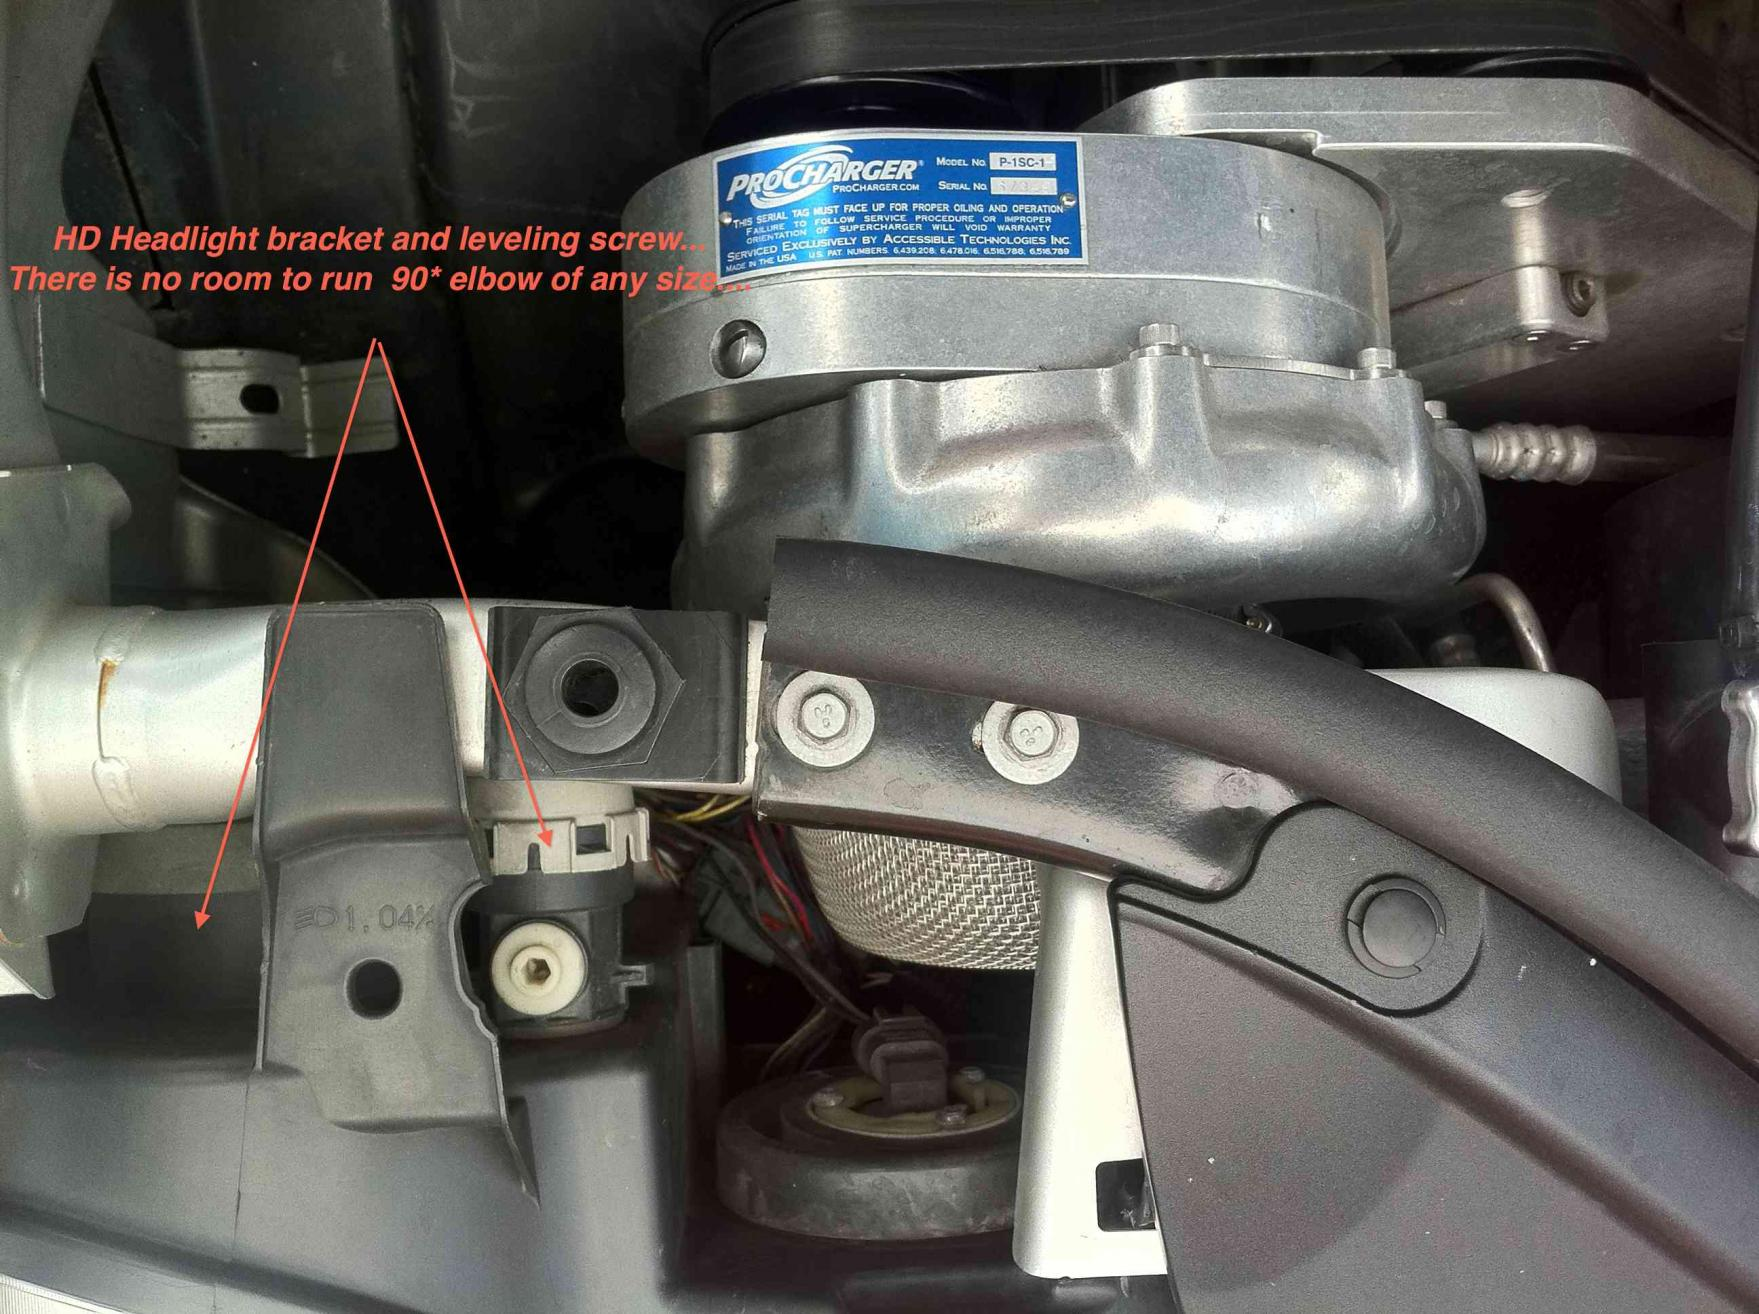 Procharger Non-Slip Pulleys   P1 & D1 owners   Page 6